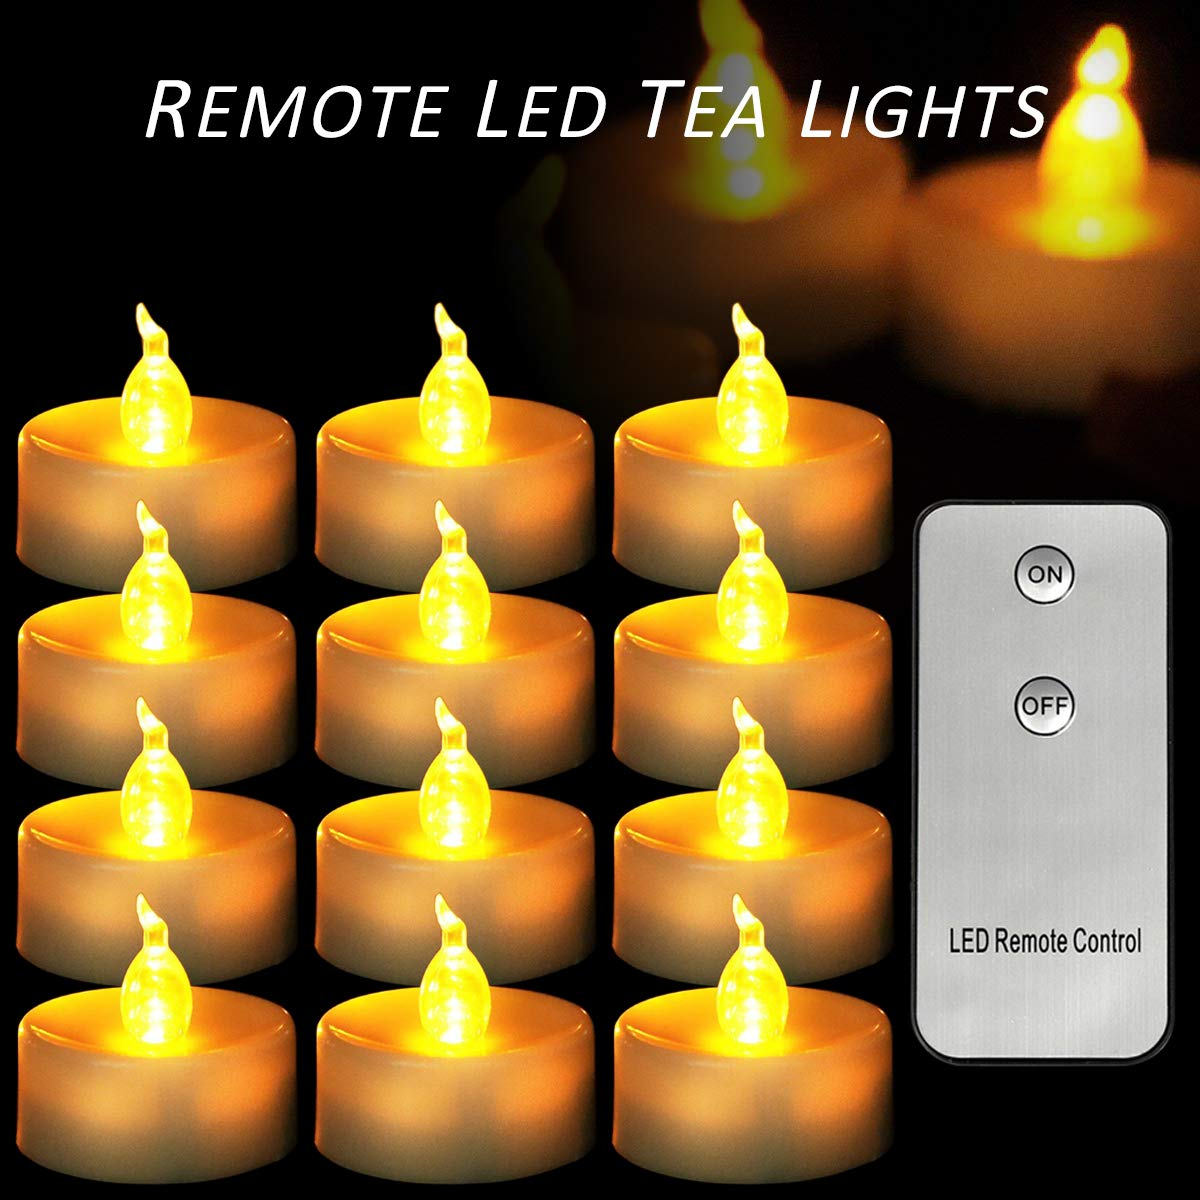 Micandle 12 Pack Remote Candles,Led Flameless Remote Tea Lights for Wedding Party Church Home Decorate,Last up to 48 Hours,Battery Amber Flickering Remote Tealights for Wedding Party by Micandle (Image #1)